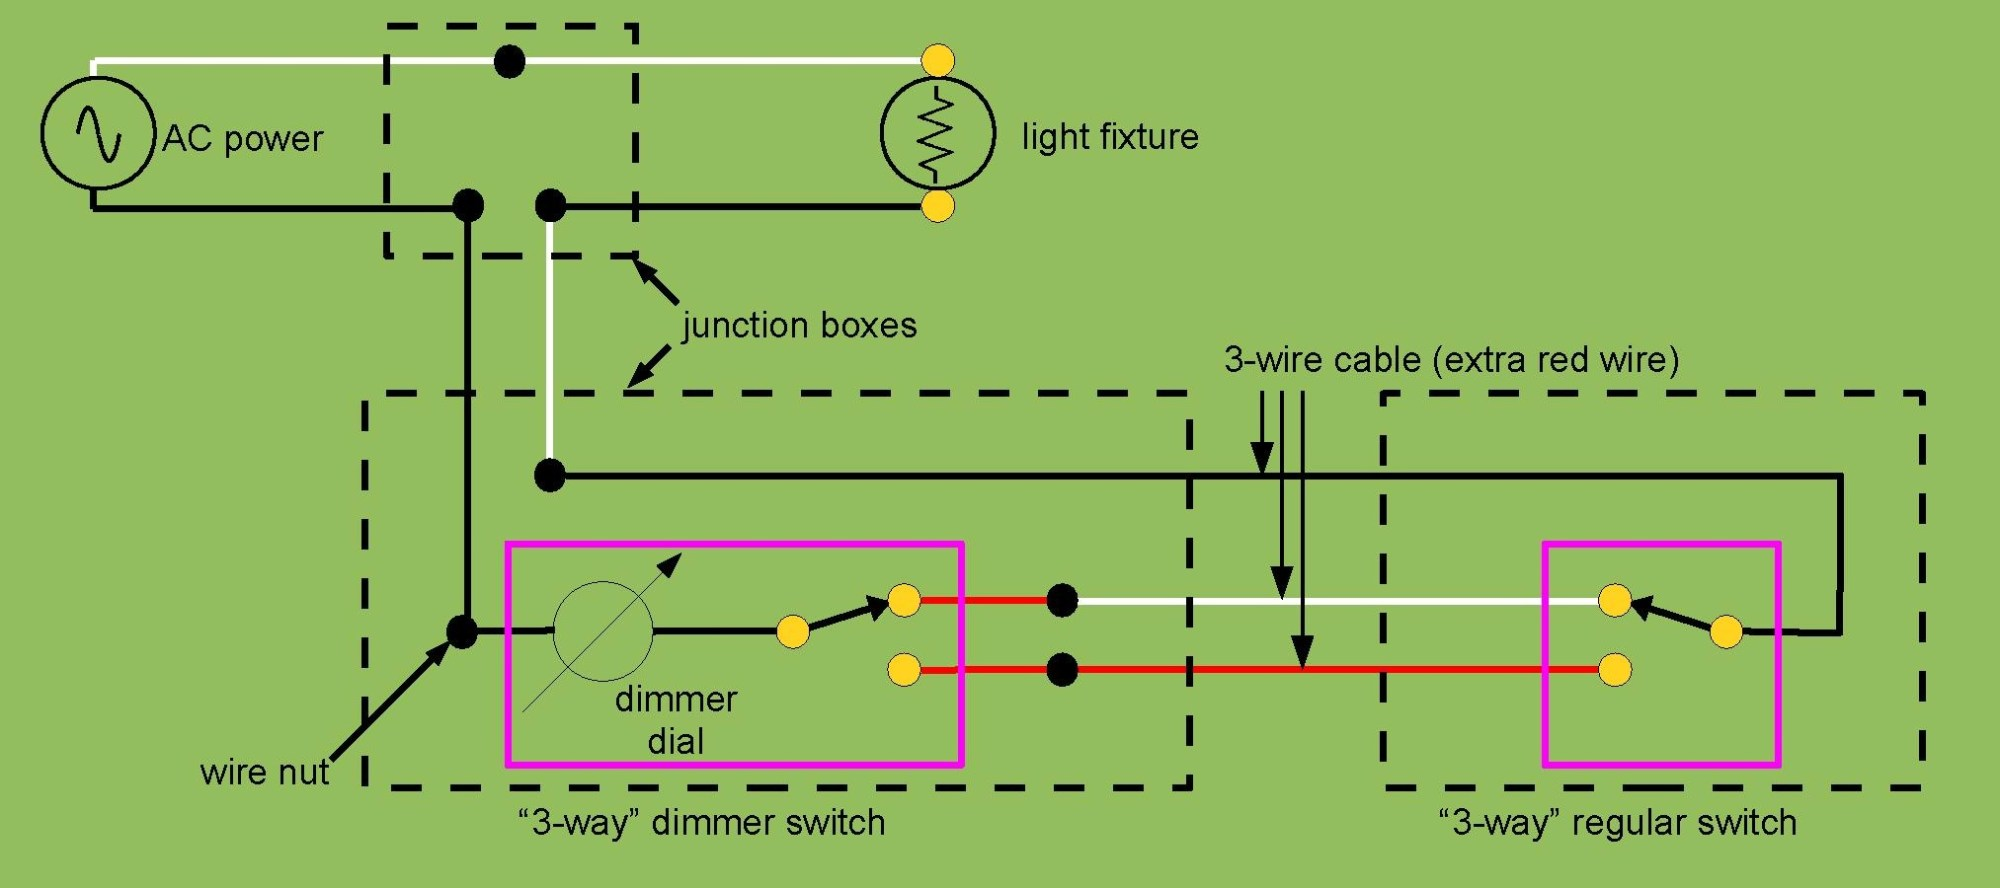 hight resolution of file 3 way dimmer switch wiring pdf wikimedia commons 3 way switch wiring diagram pdf file